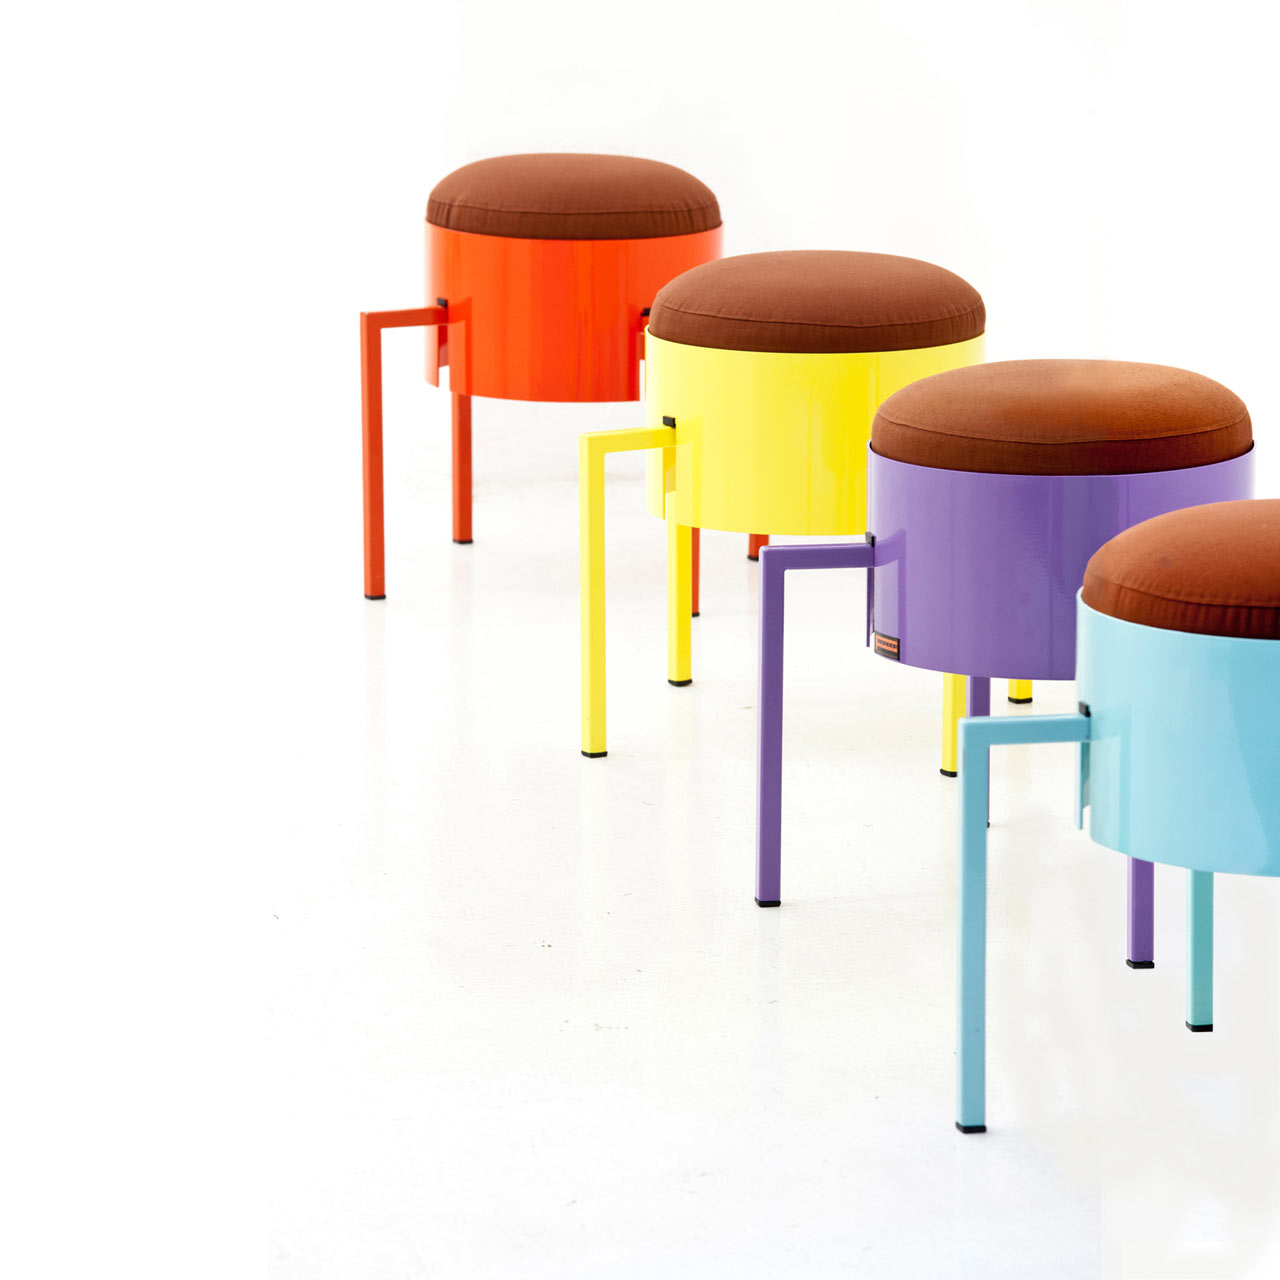 a-design-award-winner-furniture-design-4